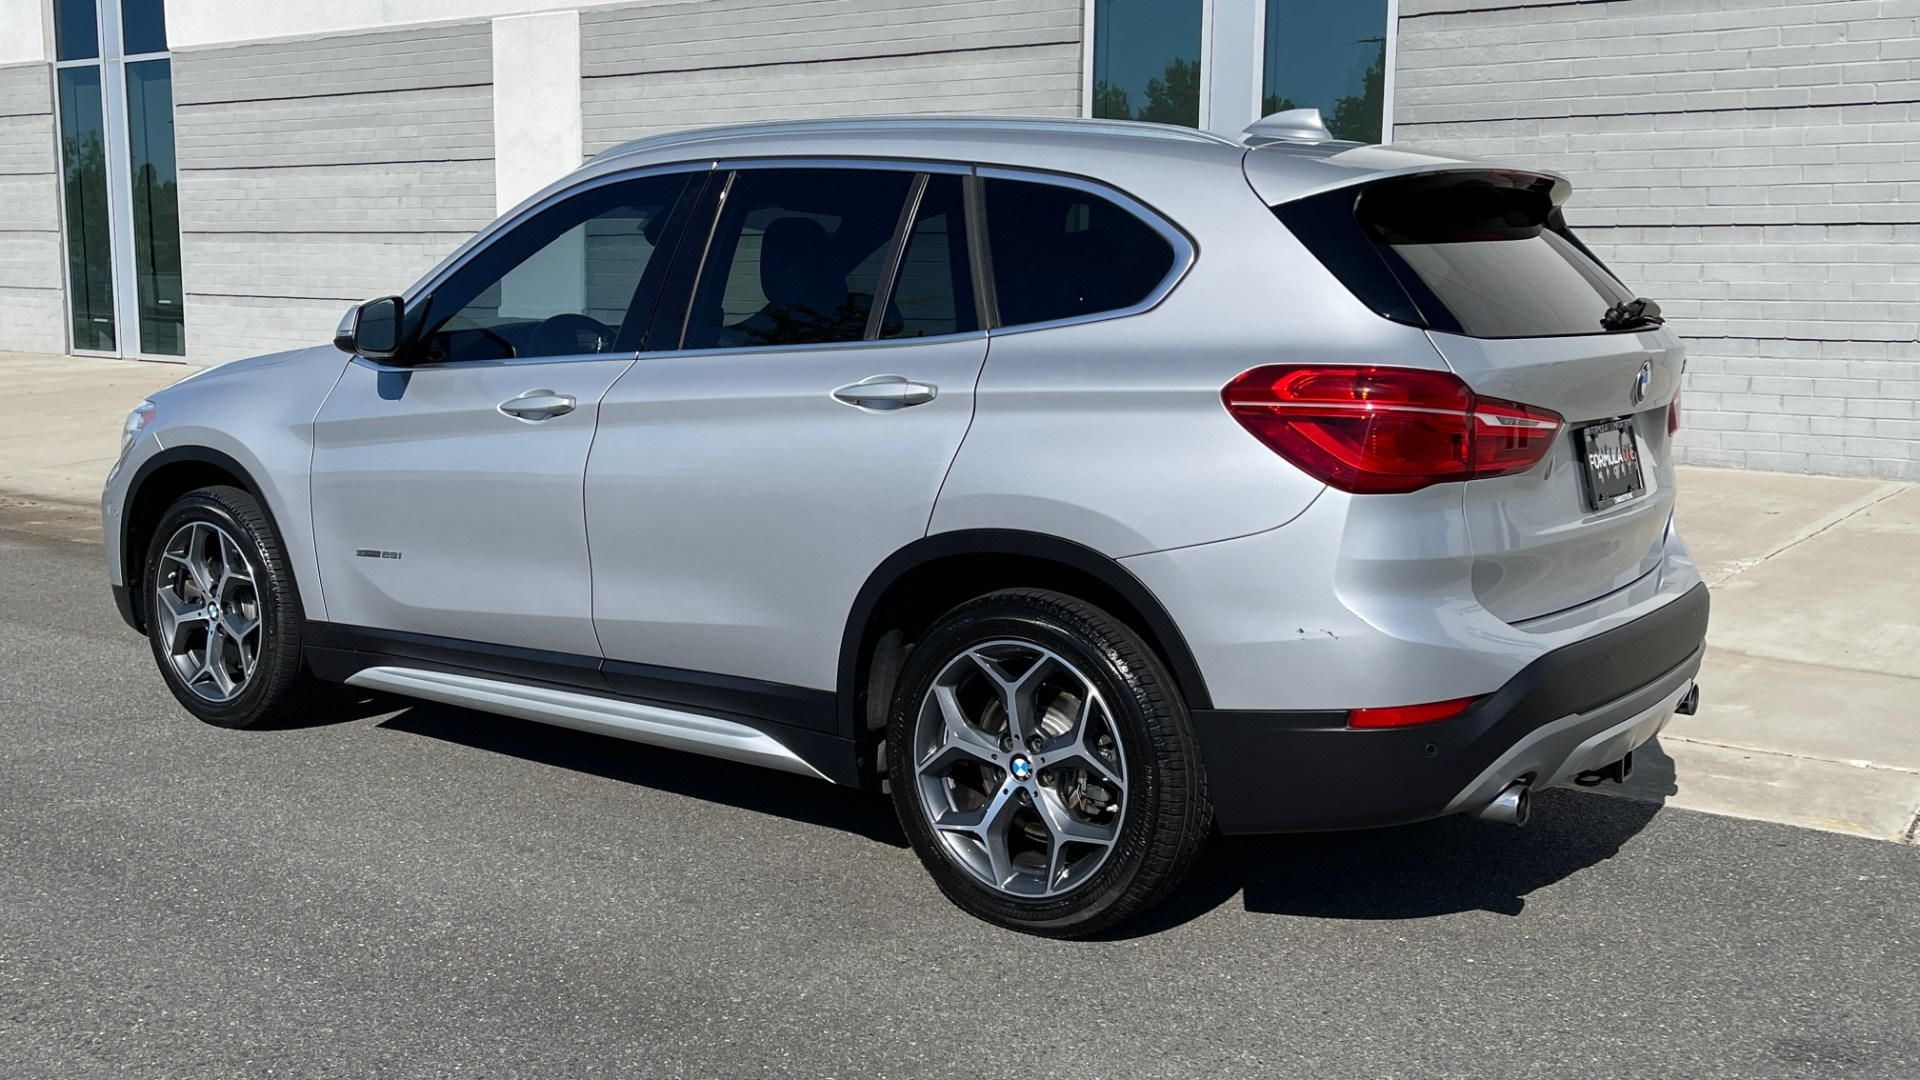 Used 2017 BMW X1 SDRIVE28I 2.0L / 8-SPD AUTO / DRIVER ASST / PANO-ROOF / REARVIEW for sale $26,995 at Formula Imports in Charlotte NC 28227 5